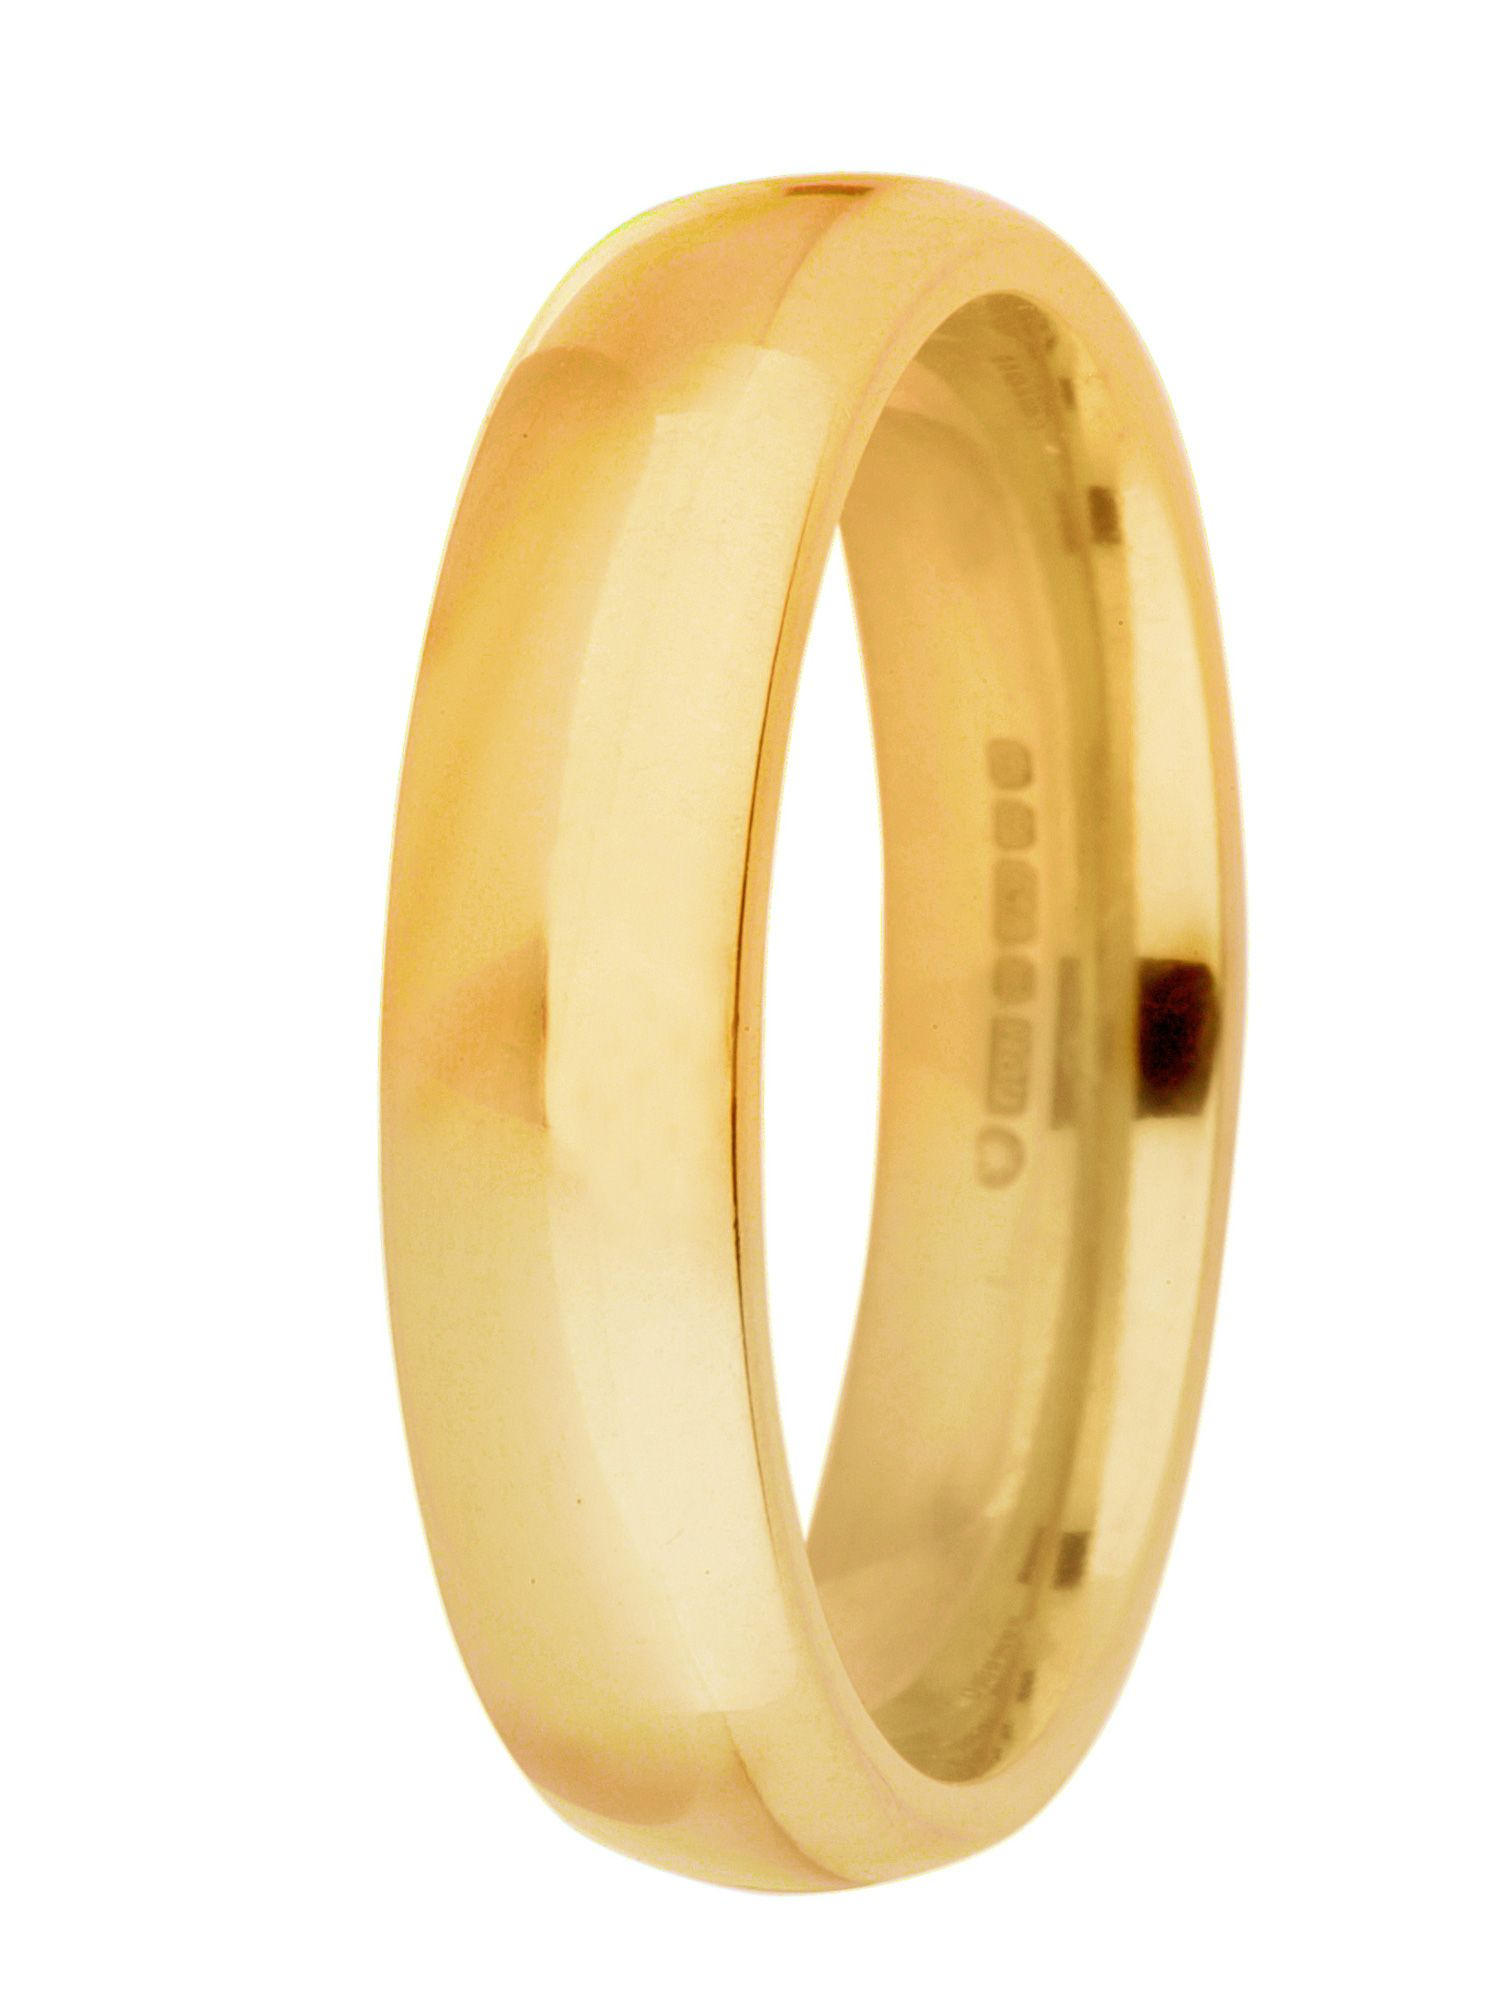 Grooms 18ct gold heavy court 5mm wedding ring - Gold